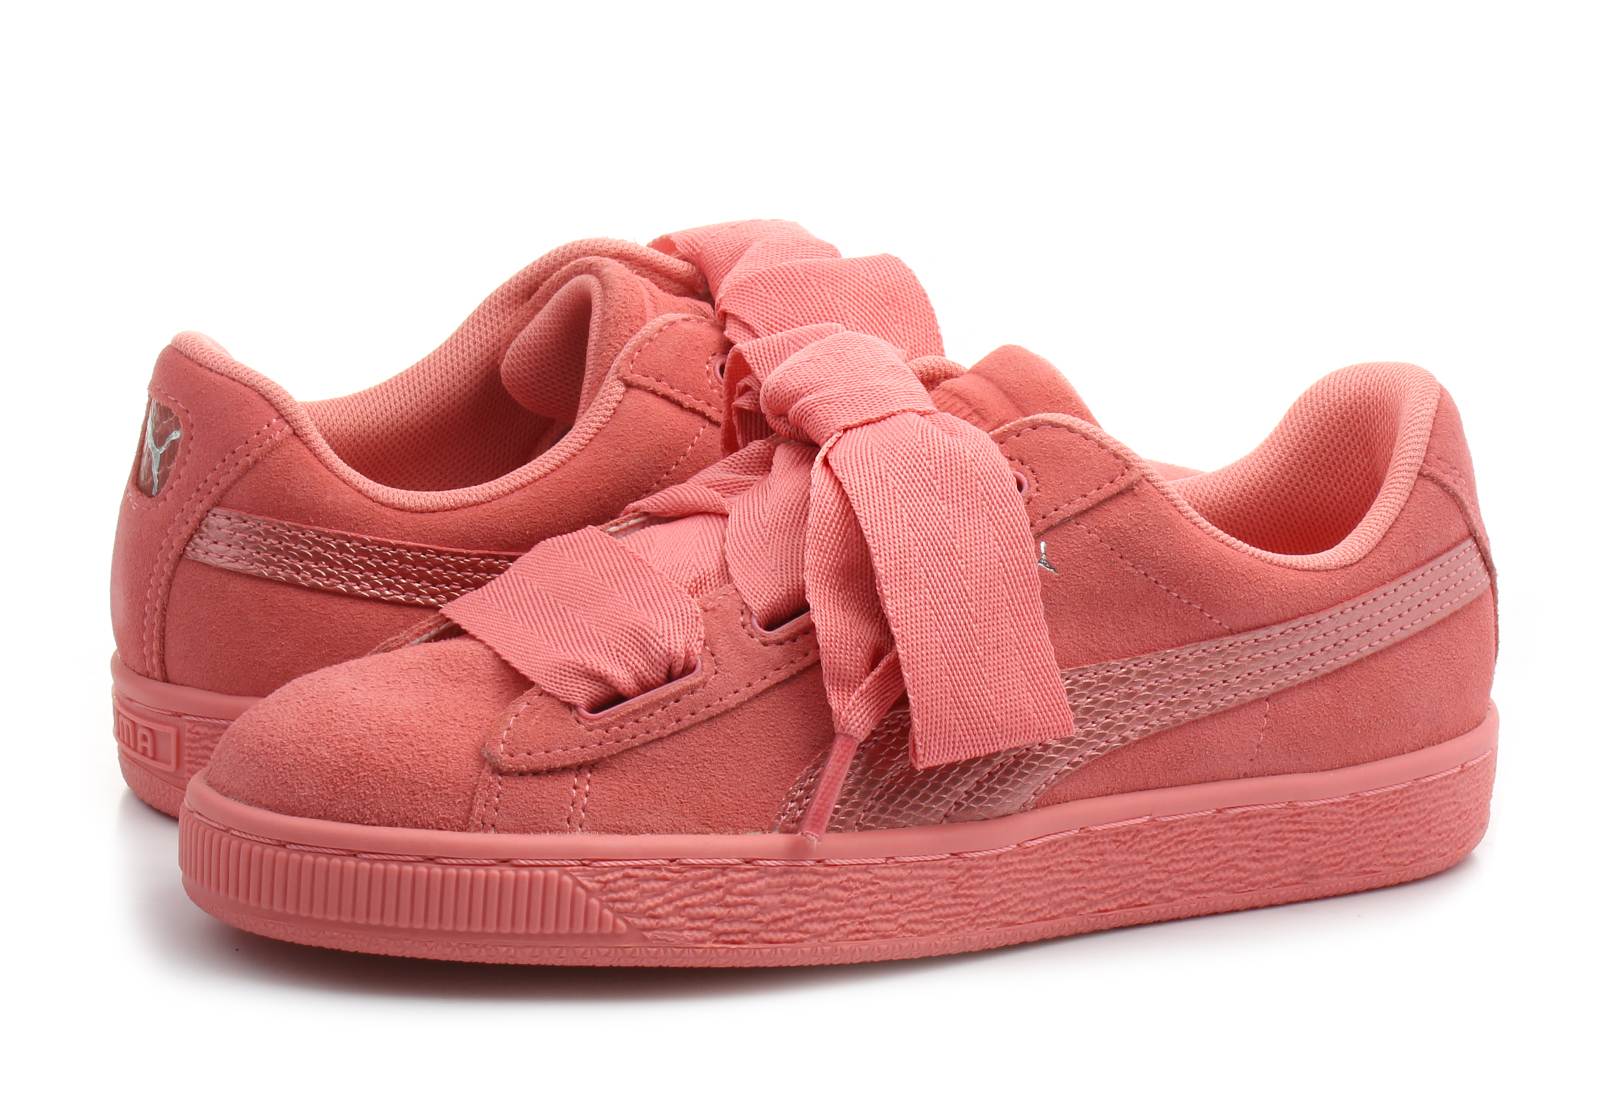 innovative design 16d60 6fa4f Puma Shoes - Suede Heart Snk Jr - 36491805-pnk - Online shop for sneakers,  shoes and boots